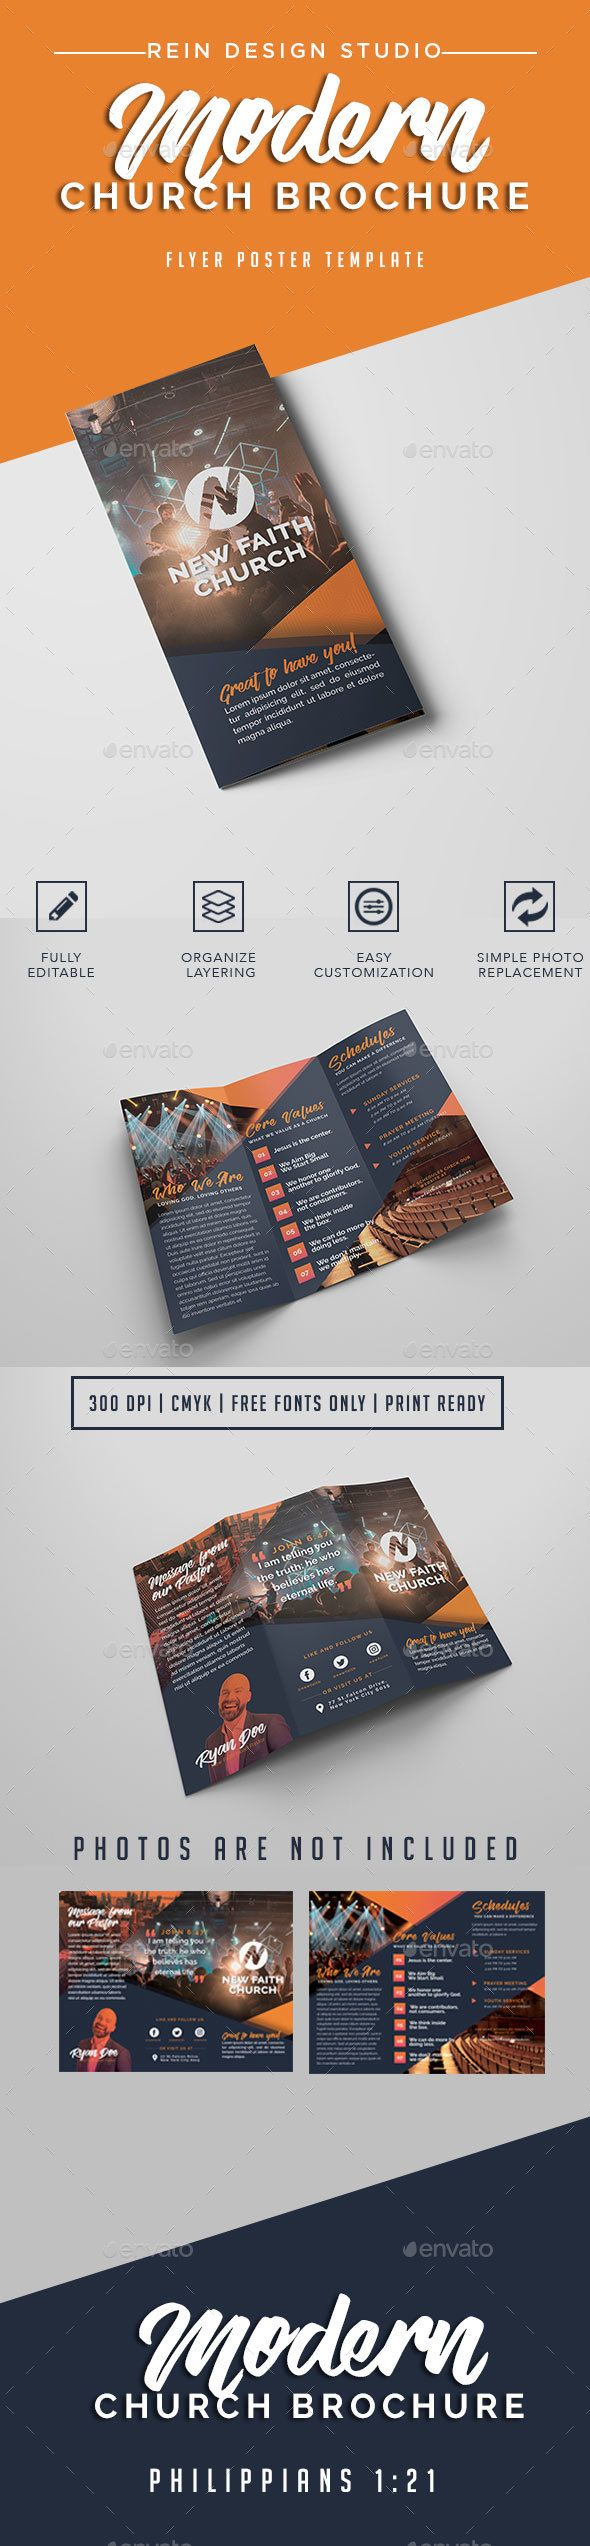 Modern Church Brochure - Brochures Print Templates